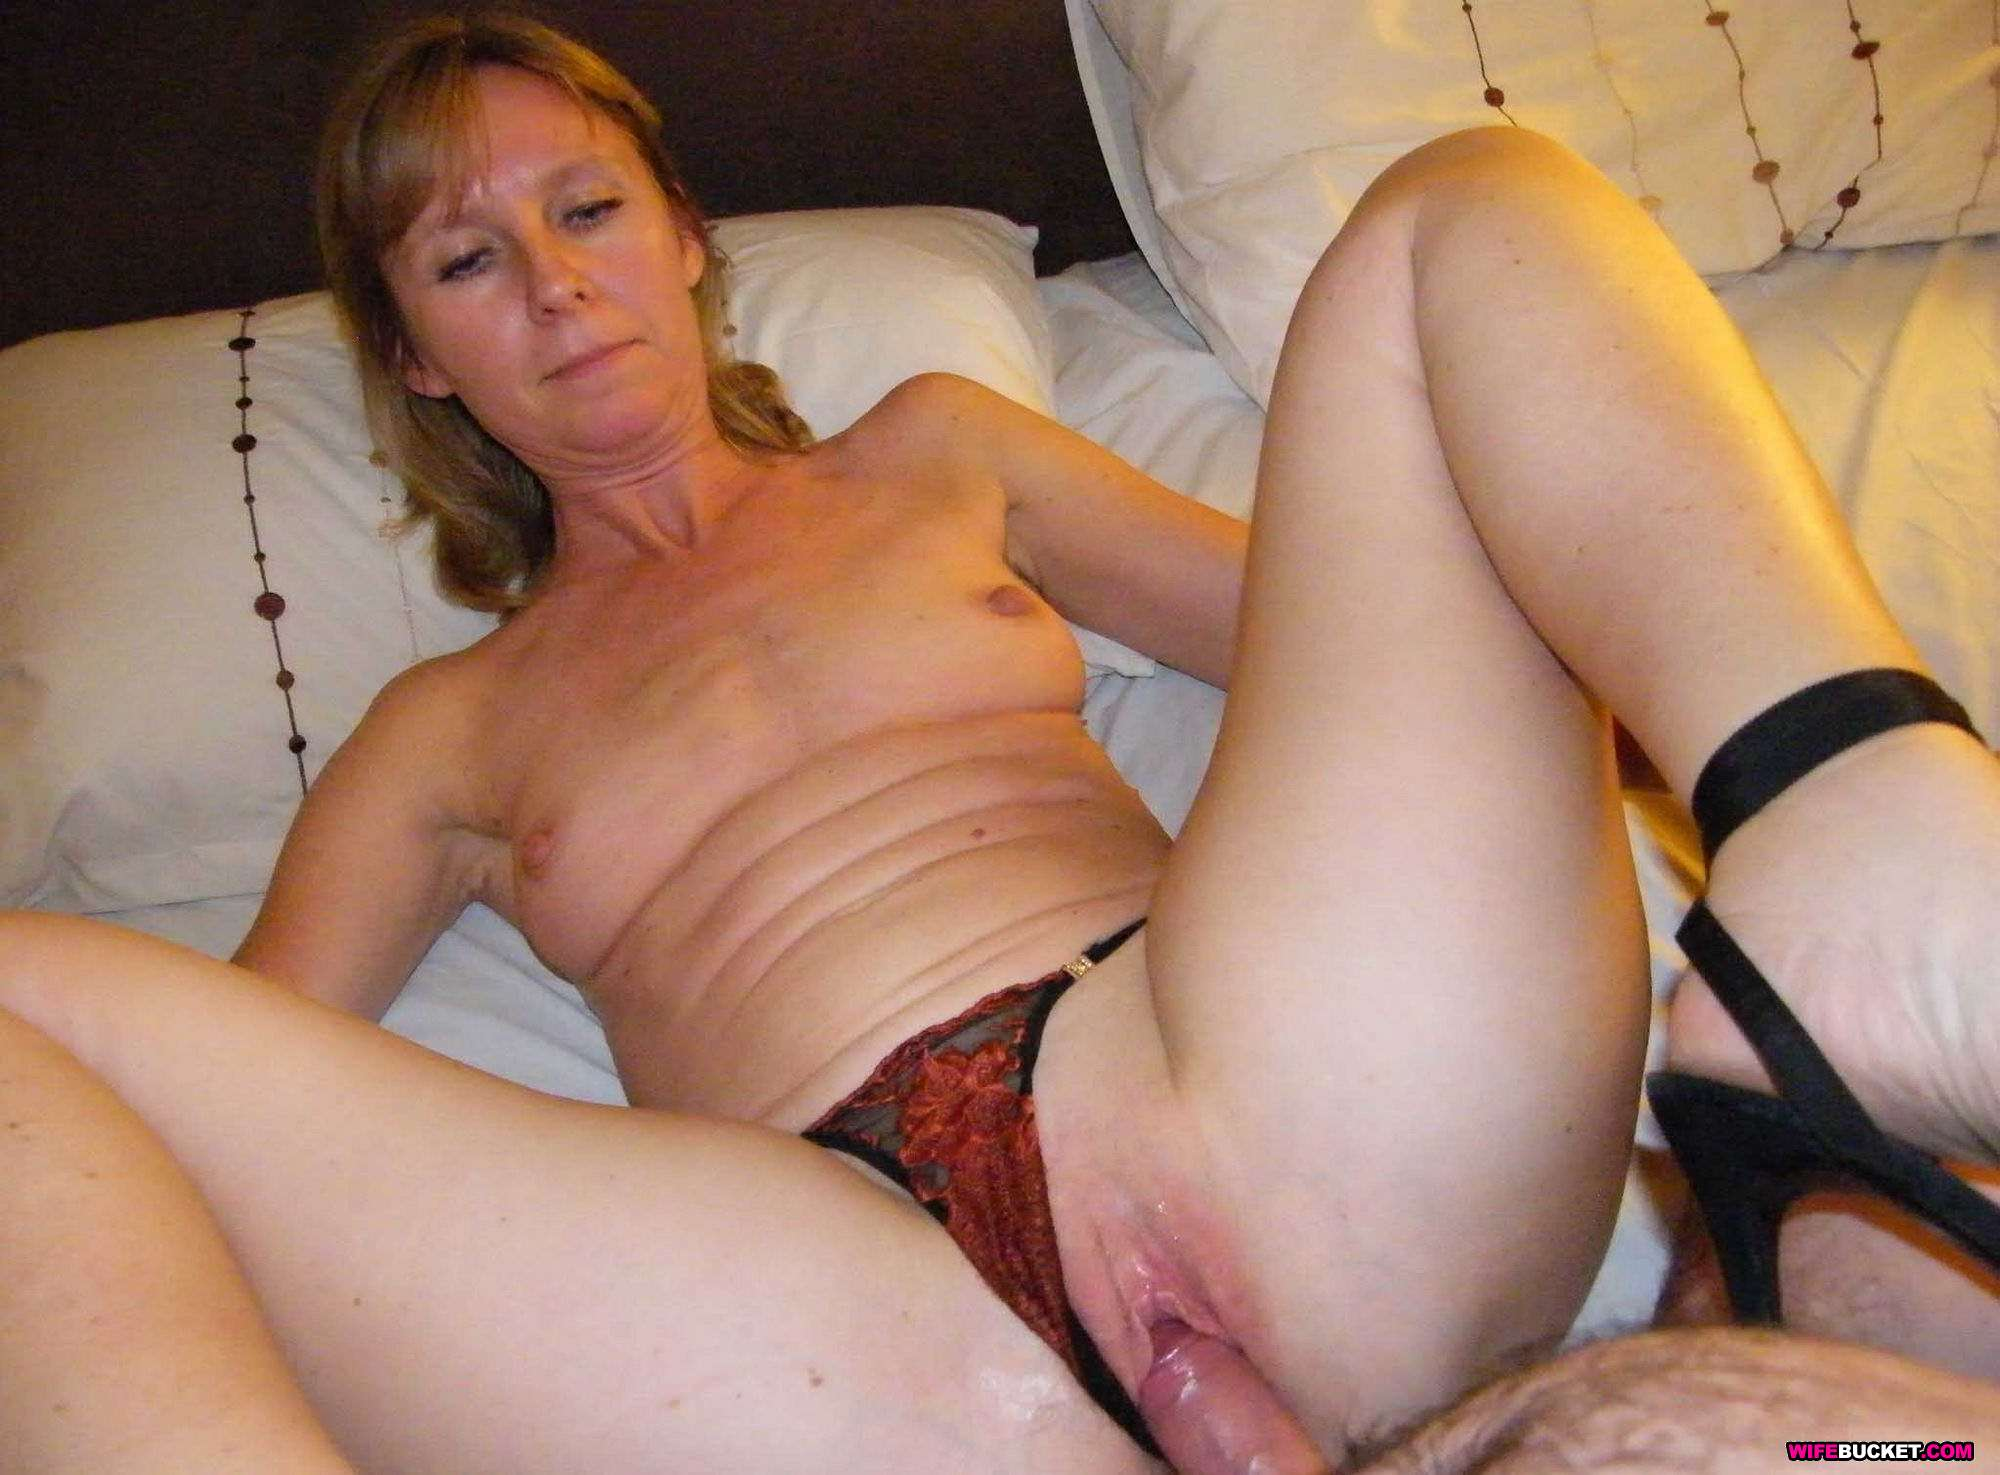 Hot Submitted Wives Mature Nude Pics Png